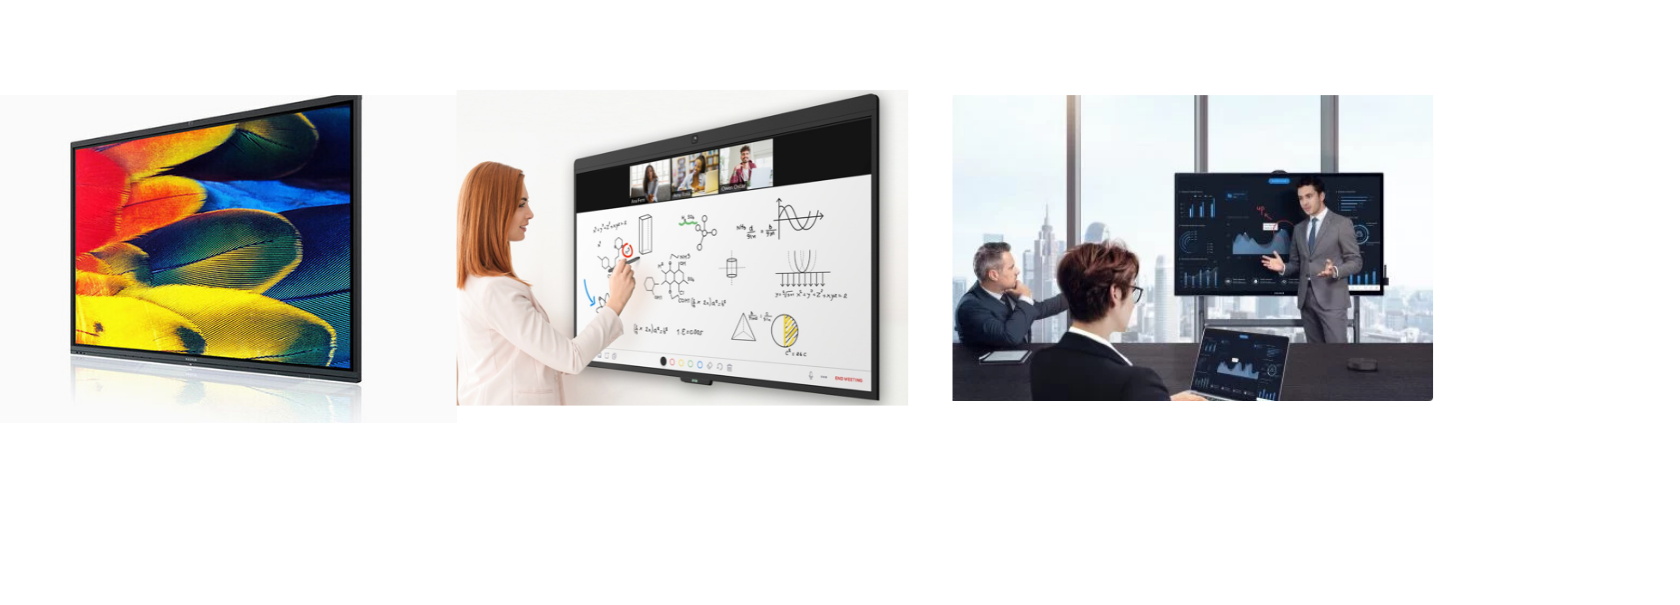 Maxhub V5 new range of touch screens available now   Also see DTEN Zoom board